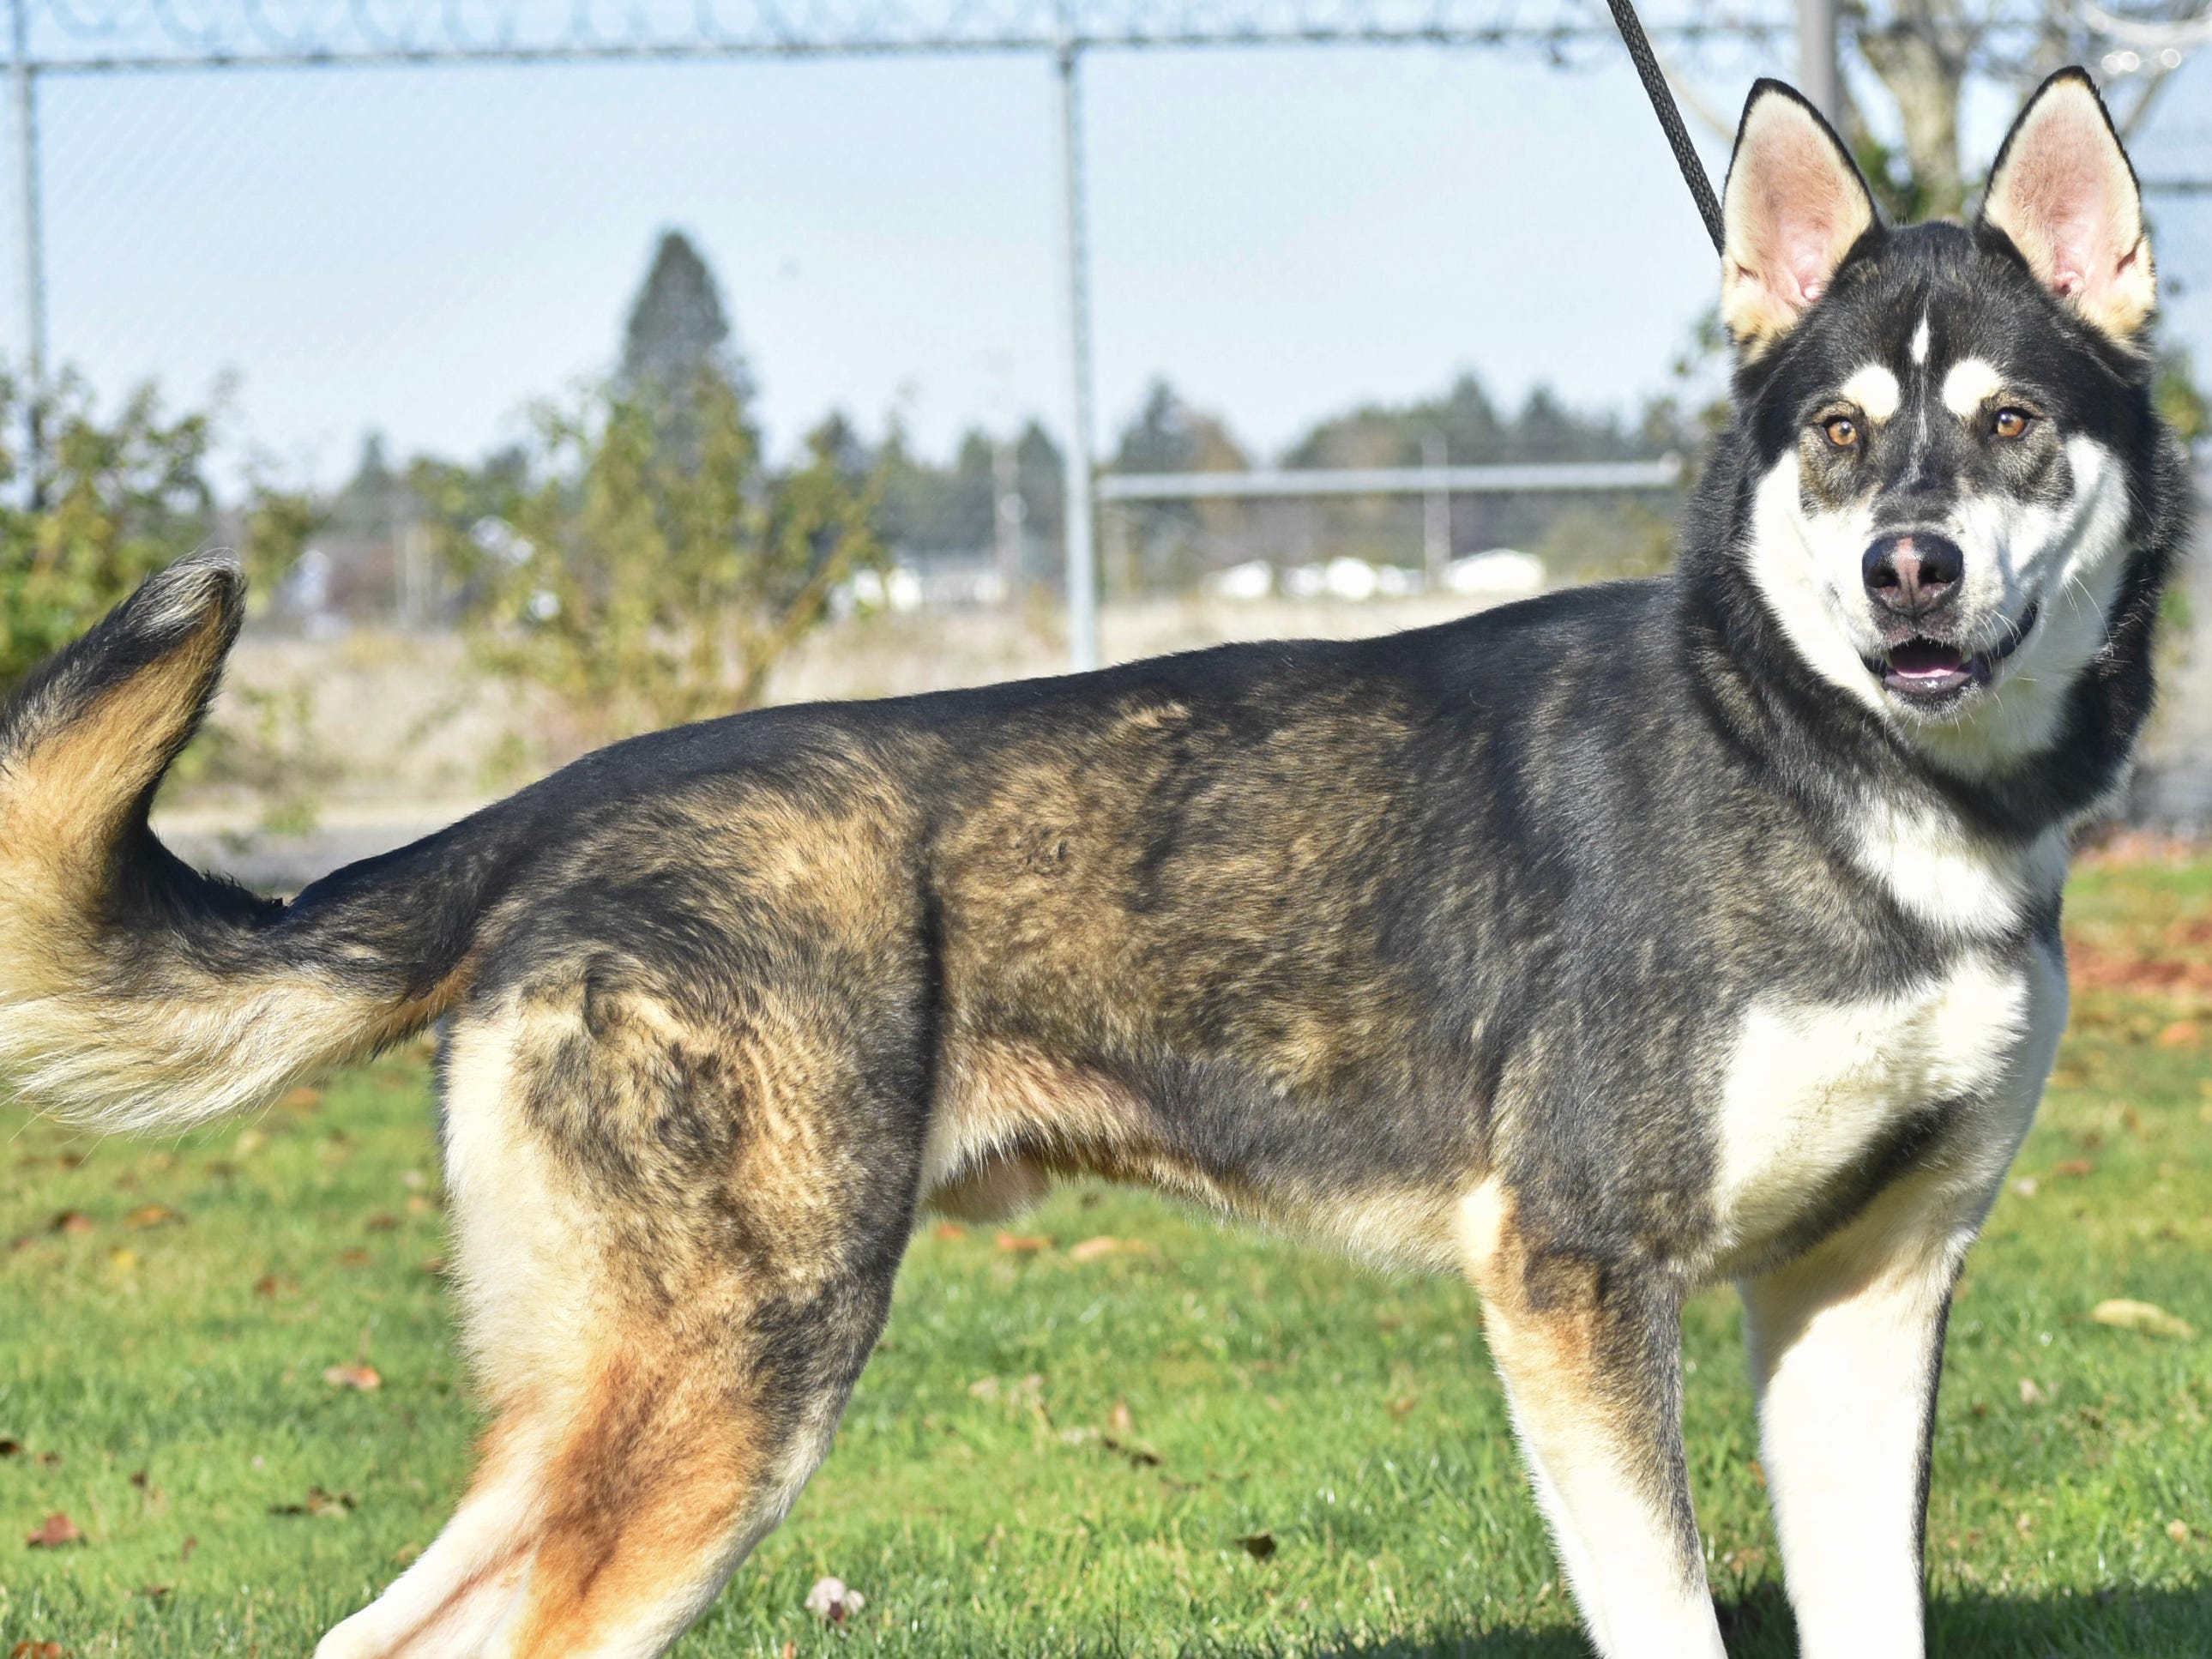 Mowgli is a 2-year-old male neutered Alaskan malamute mix. He is part of Marion County Dog Shelter's special adoption event through Saturday, Dec. 22, where the adoption fee equals the day of the month. Mowgli can be adopted for $19 on Dec. 19, $20 on Dec. 20, and so on. Purchase of a one-year license is required. Adoption hours are Tuesday through Saturday, 10 a.m. to 4:30 p.m. For information, contact Marion County Dog Services at 503-588-5366 or go to www.MCDogs.net.